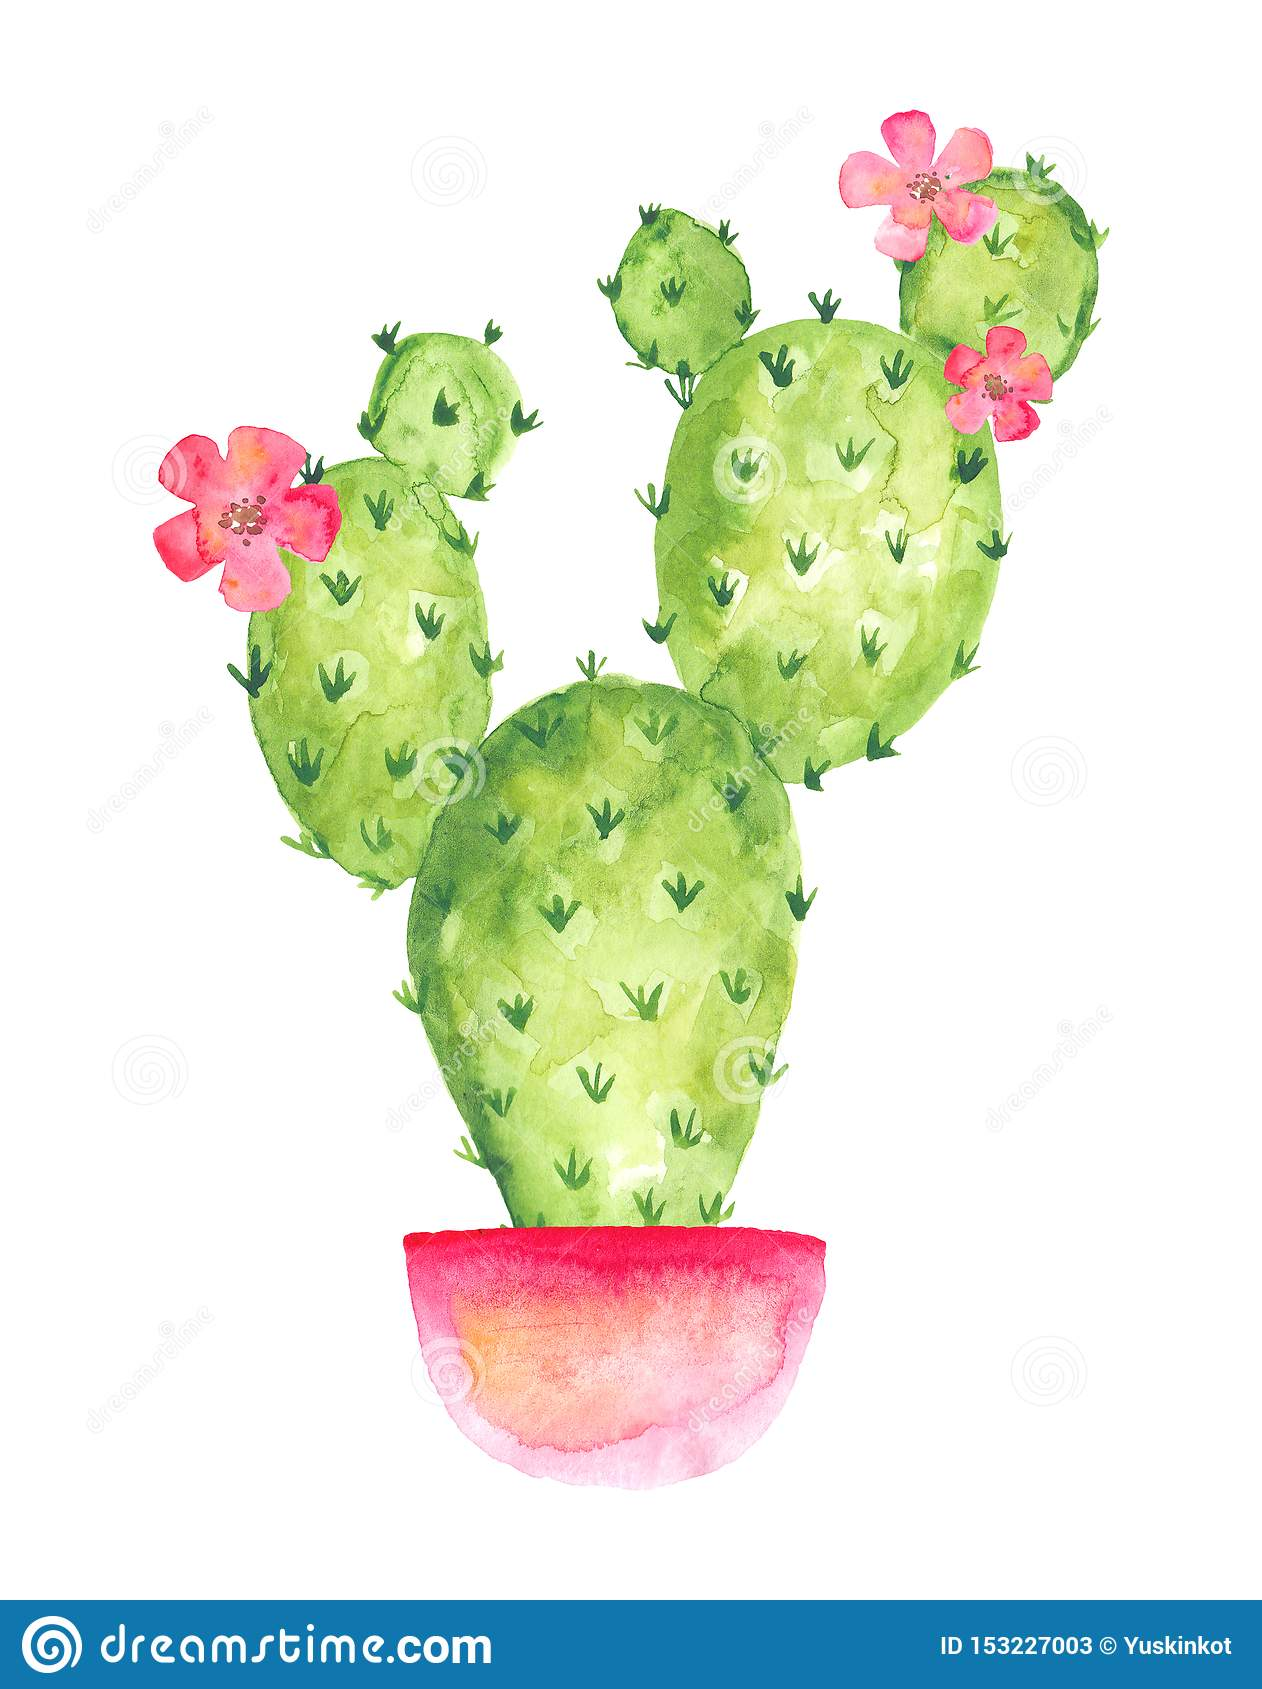 Cactus Porn Dibujo blooming cactus in a pink pot with flowers, watercolor